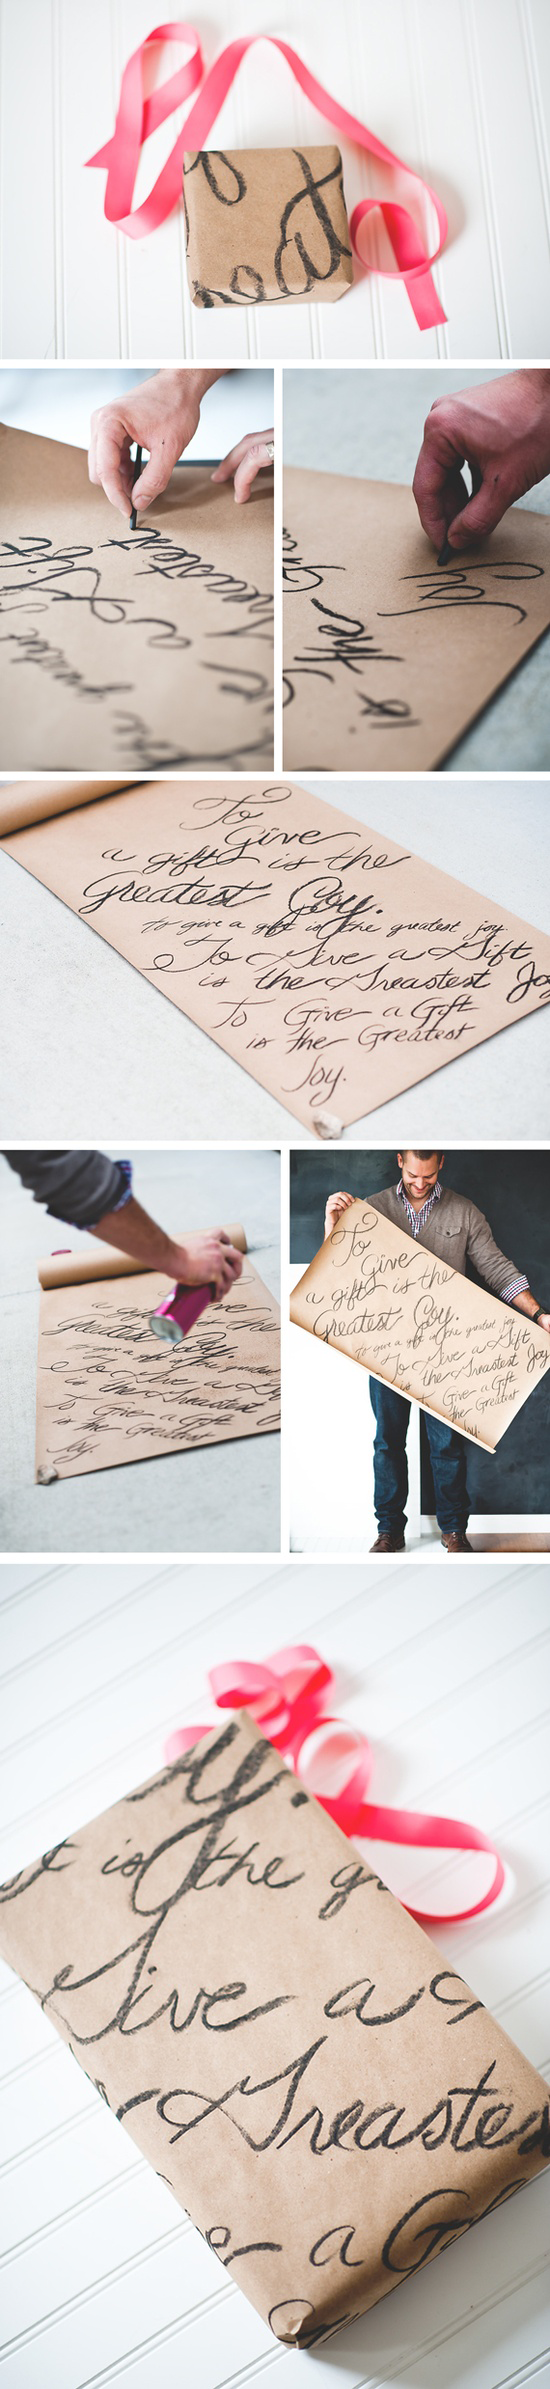 diy-love-note-gift-wrapping-paper